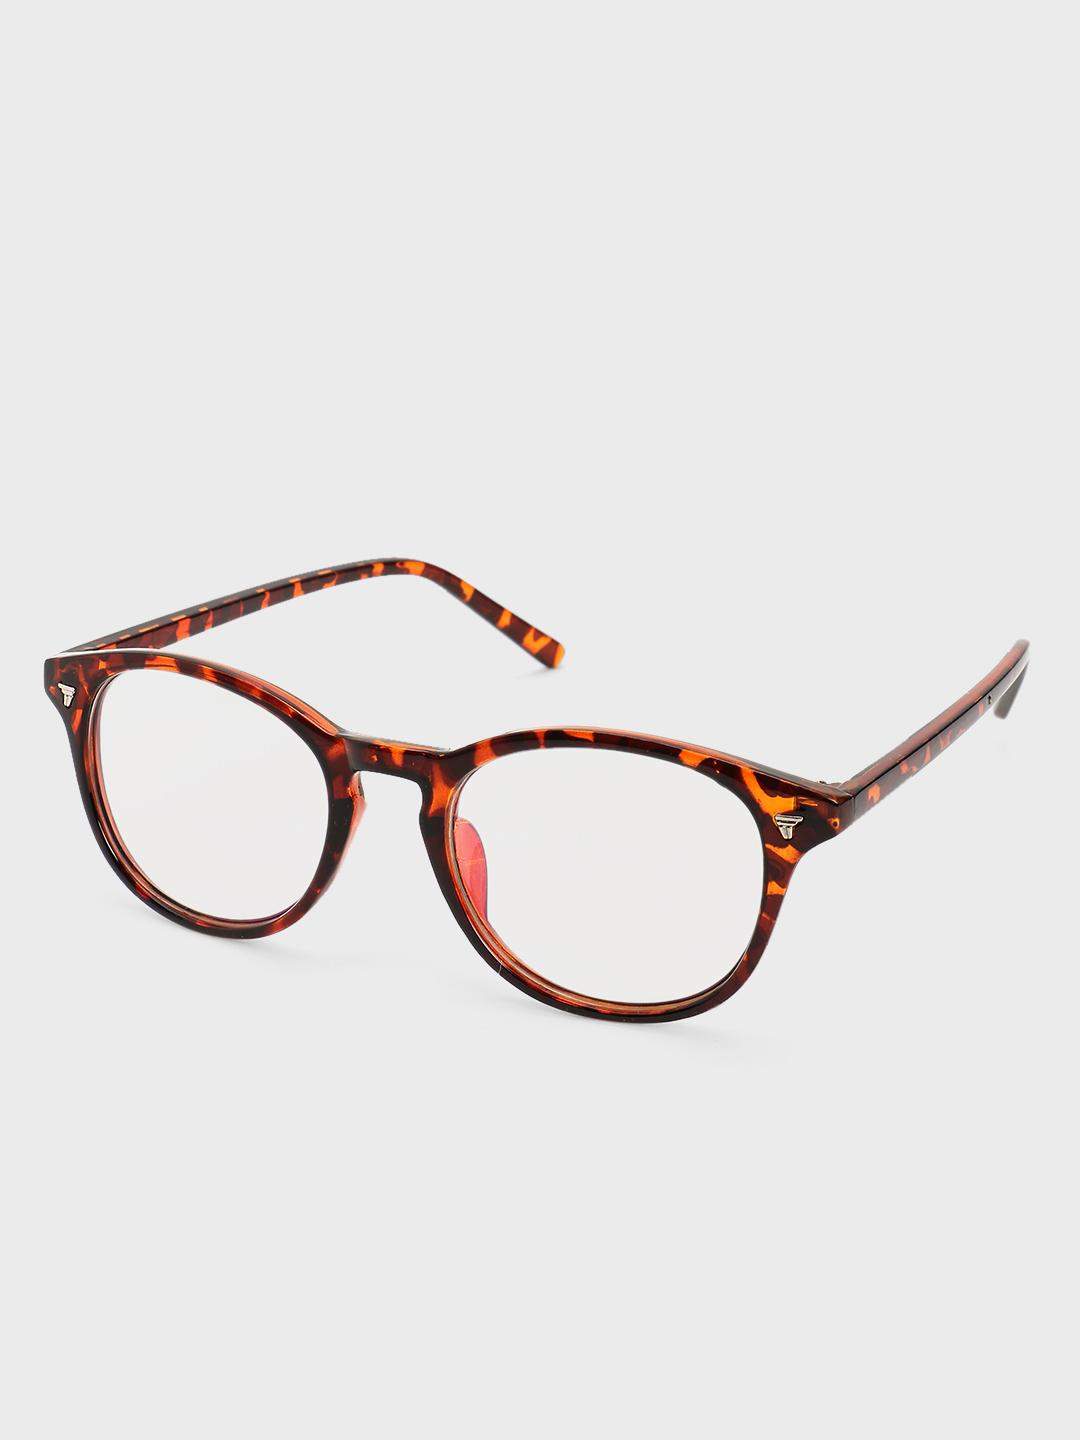 Pataaka Brown Tortoise Shell Clear Lens Sunglasses 1